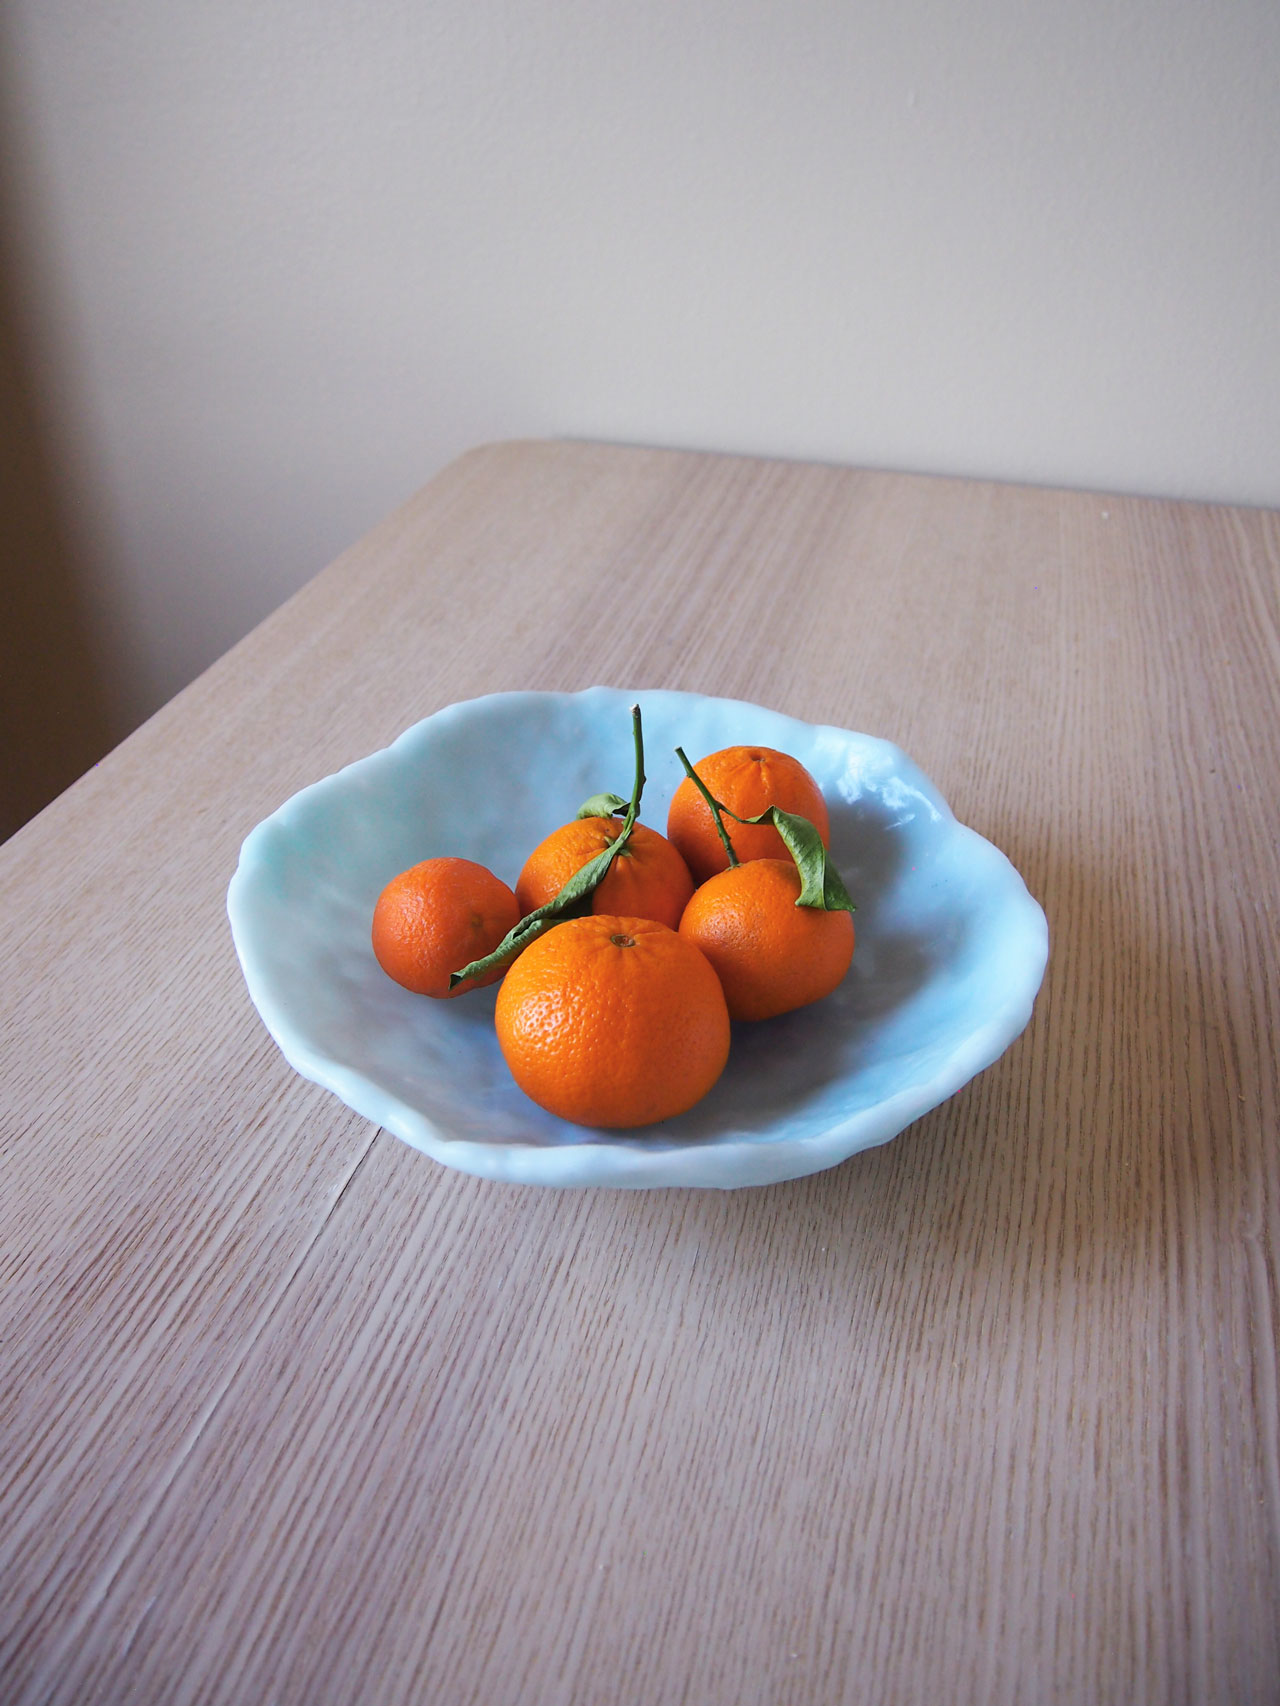 DIY translucent fruit bowl designed by Aandersson